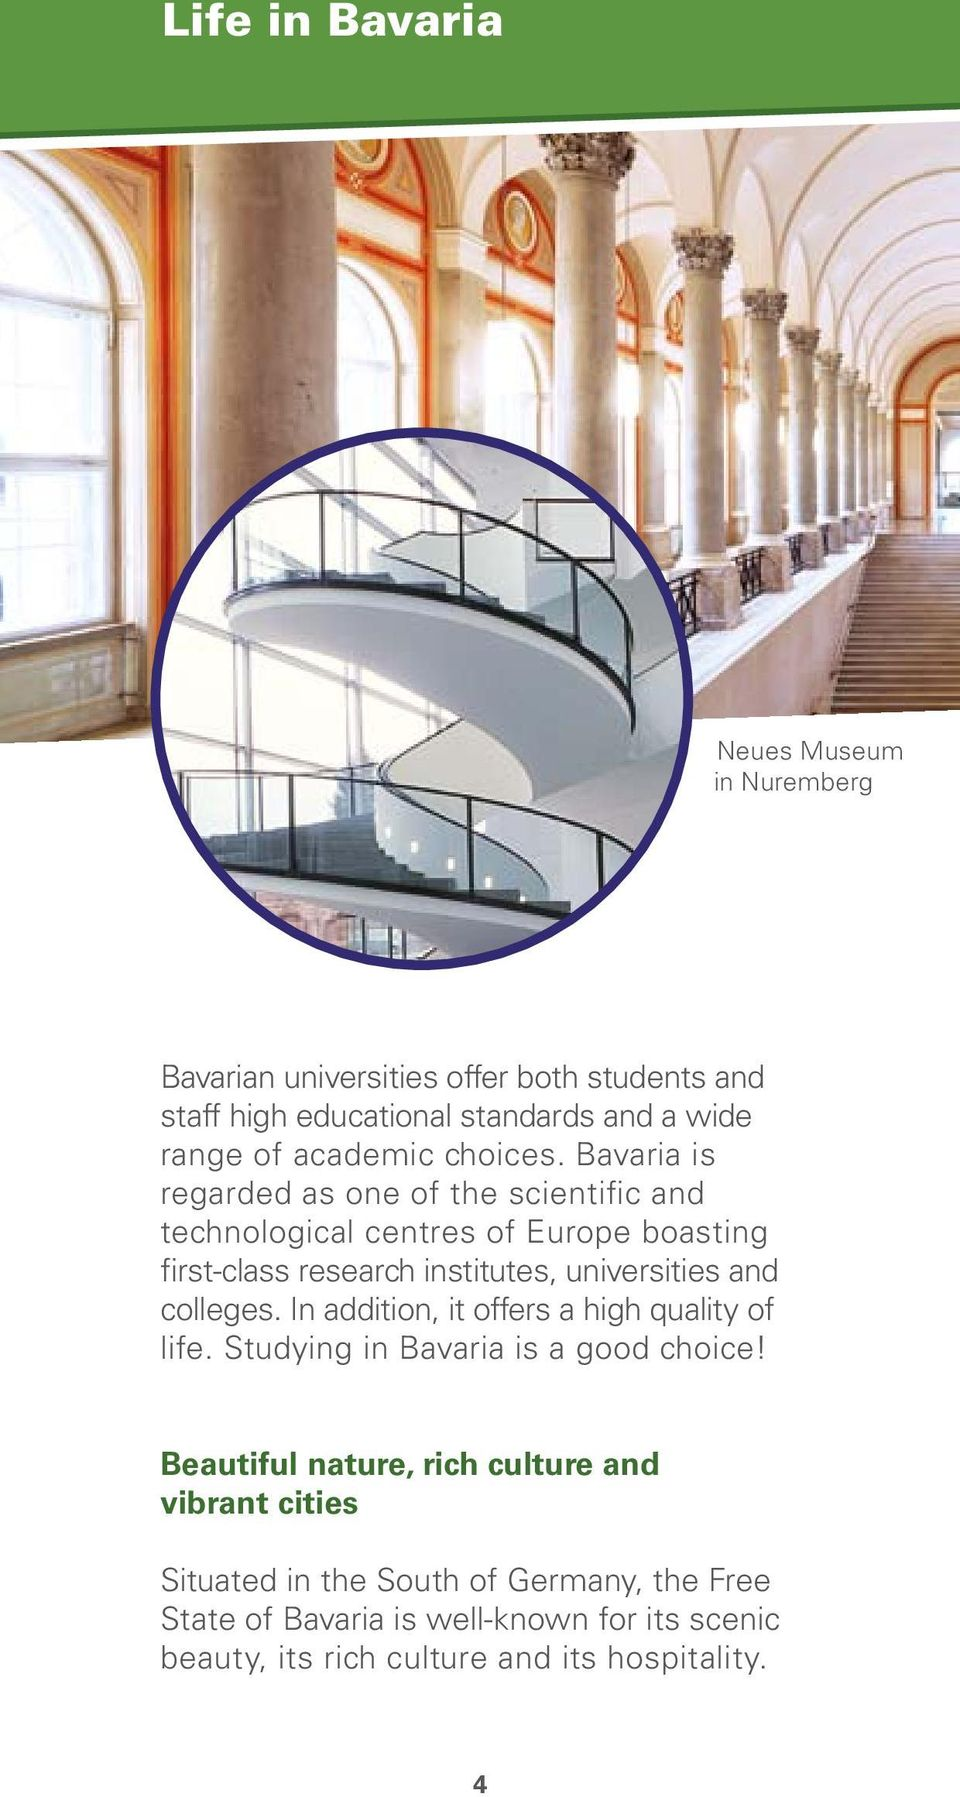 Bavaria is regarded as one of the scientific and technological centres of Europe boasting first-class research institutes, universities and